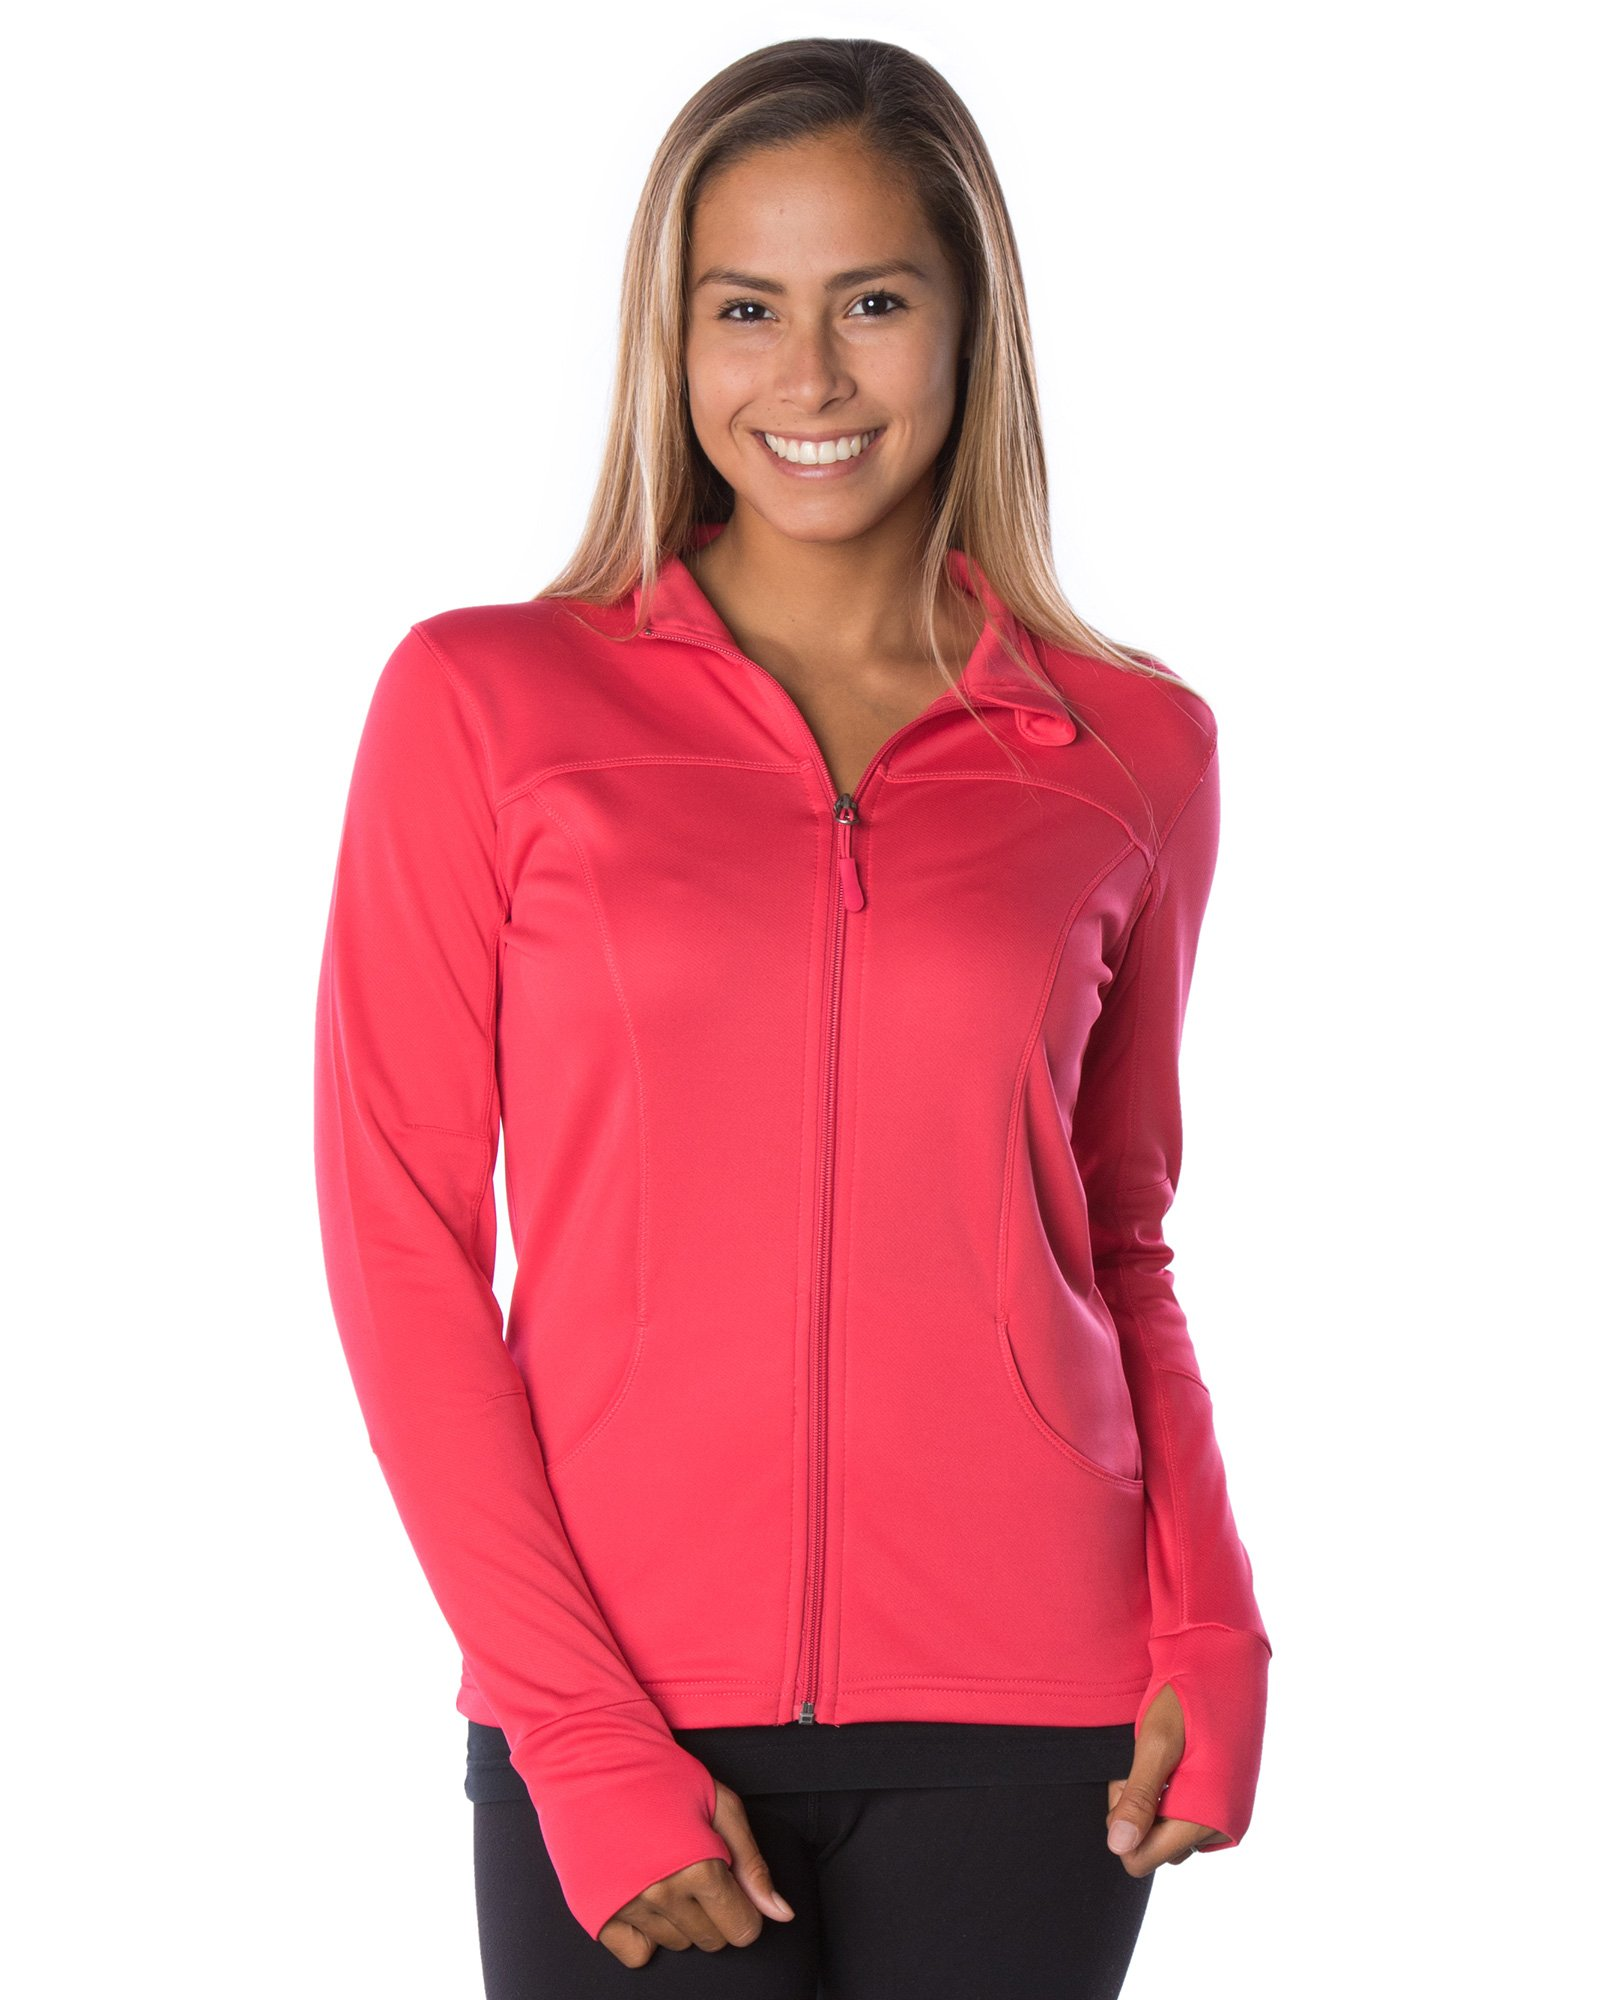 Global Women's Slim Fit Lightweight Full Zip Yoga Workout Jacket XL Coral